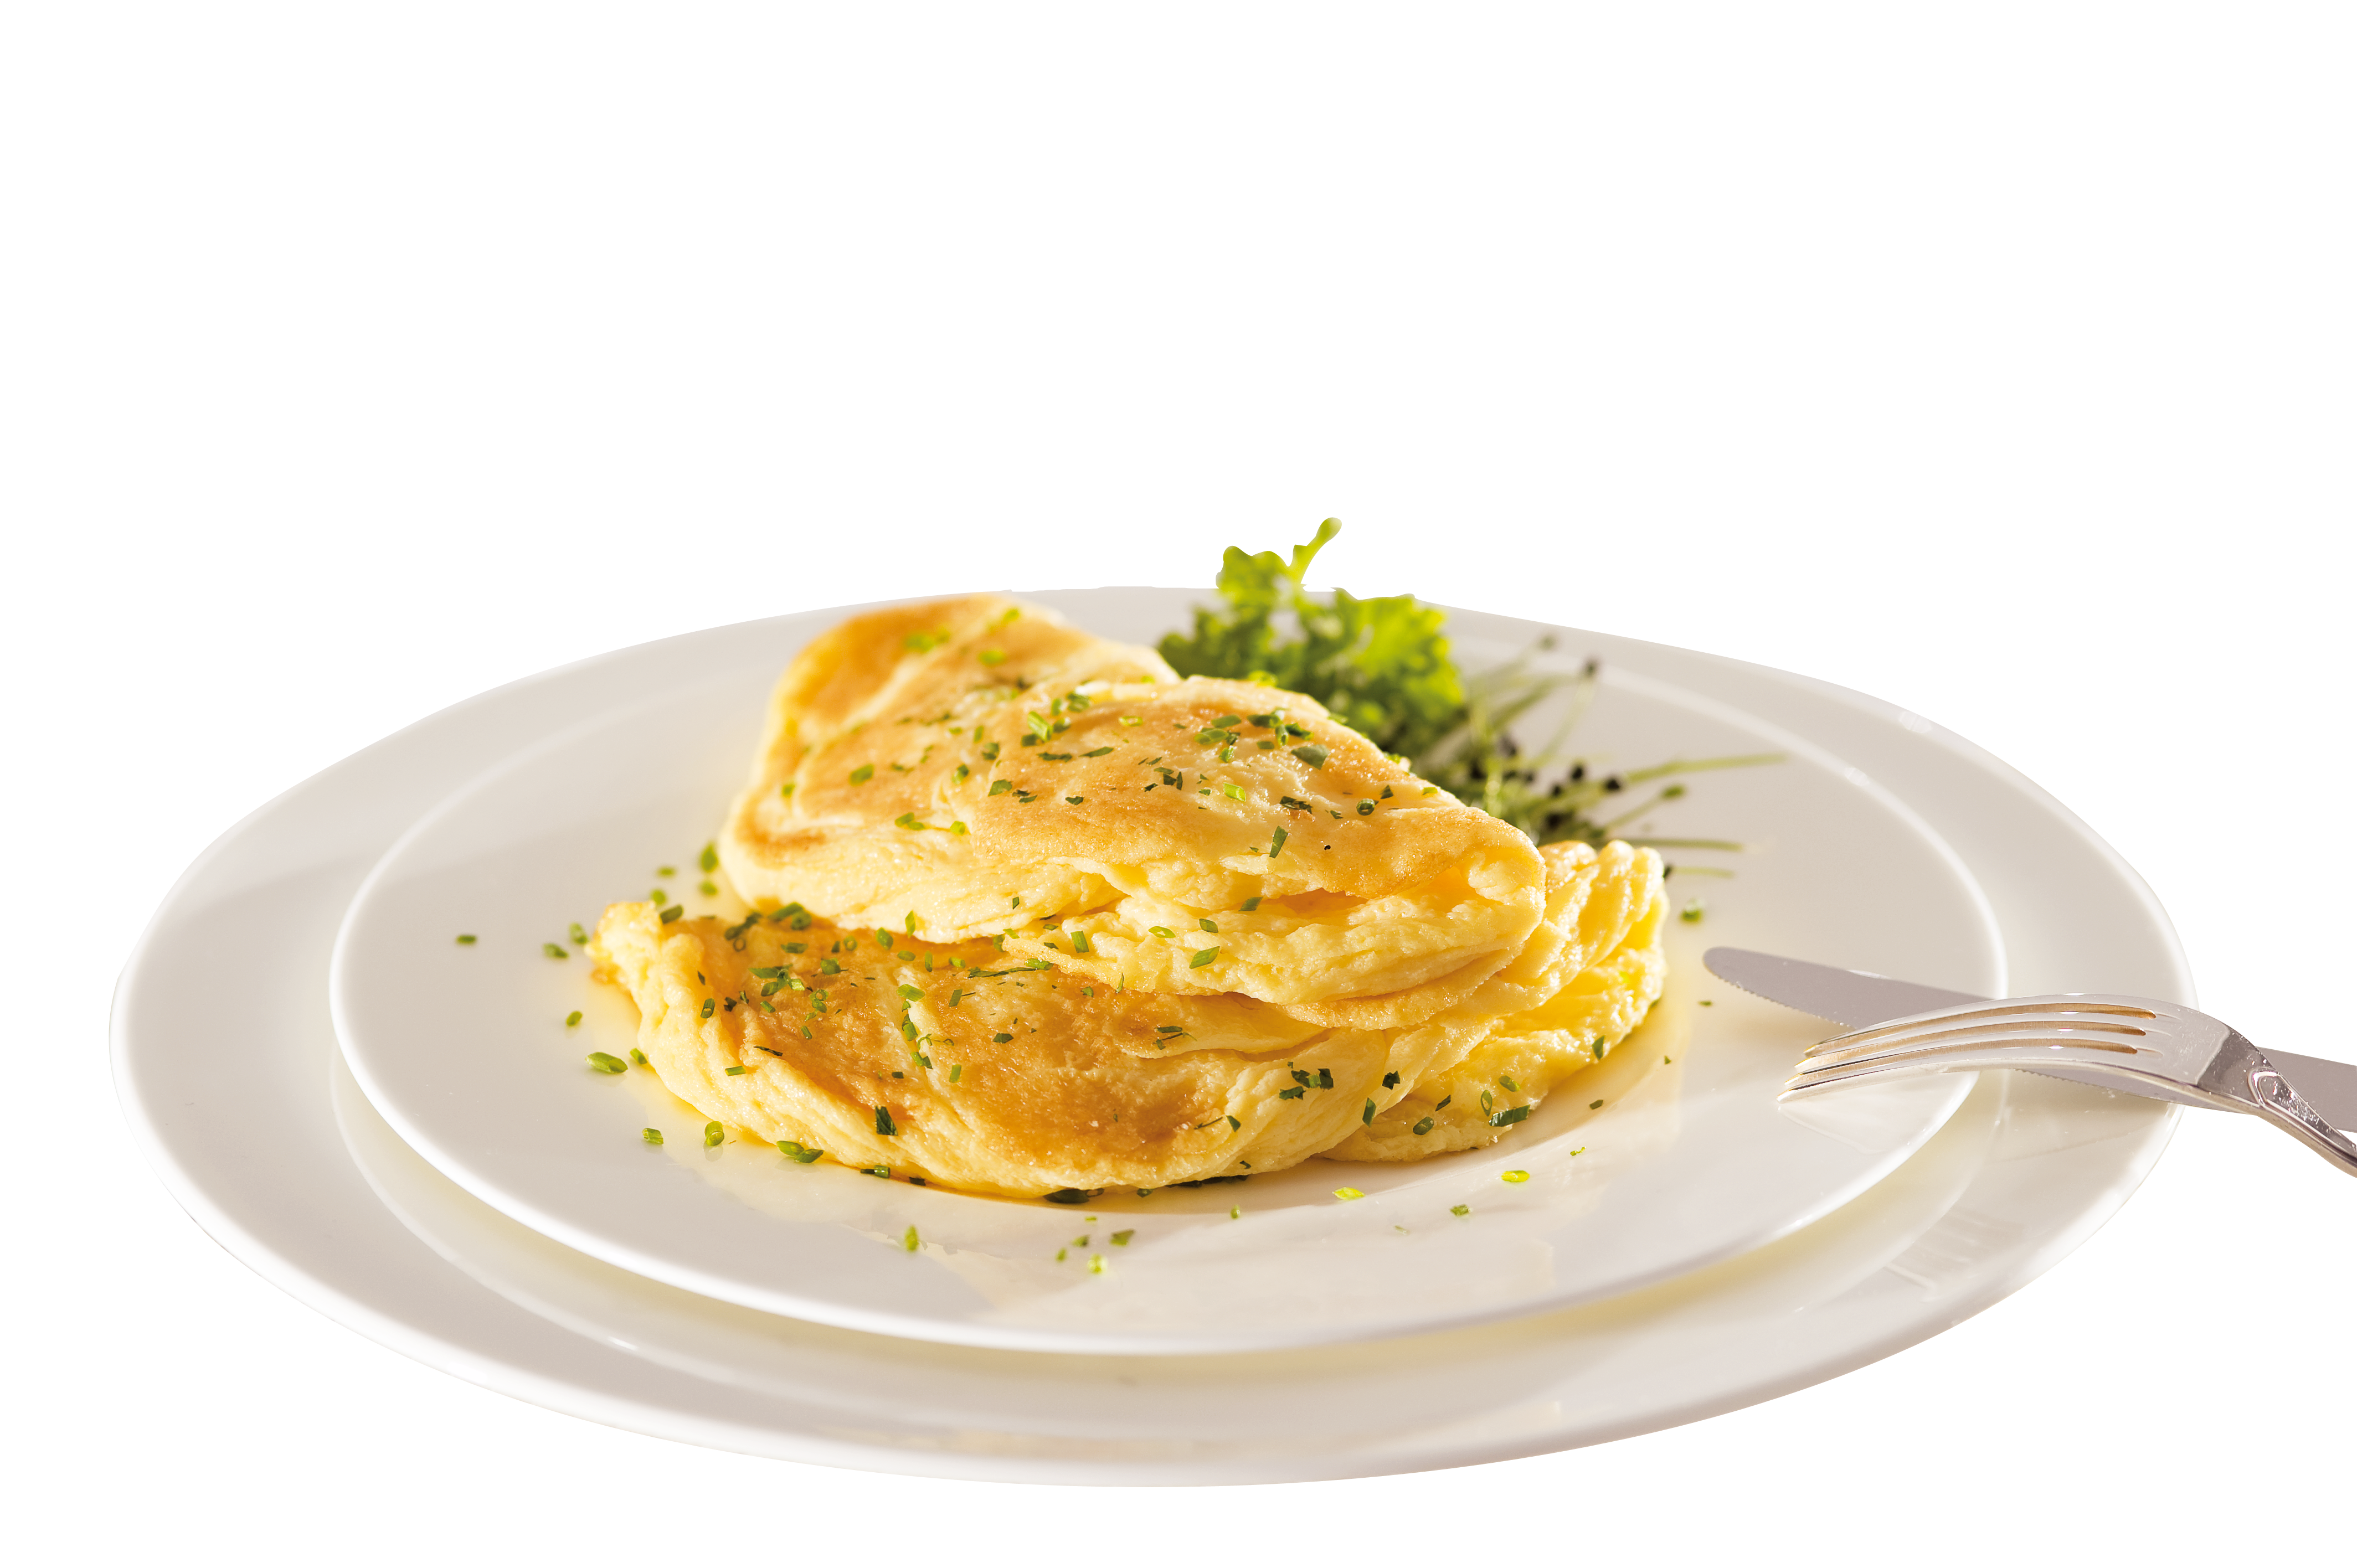 Omelette PNG Image